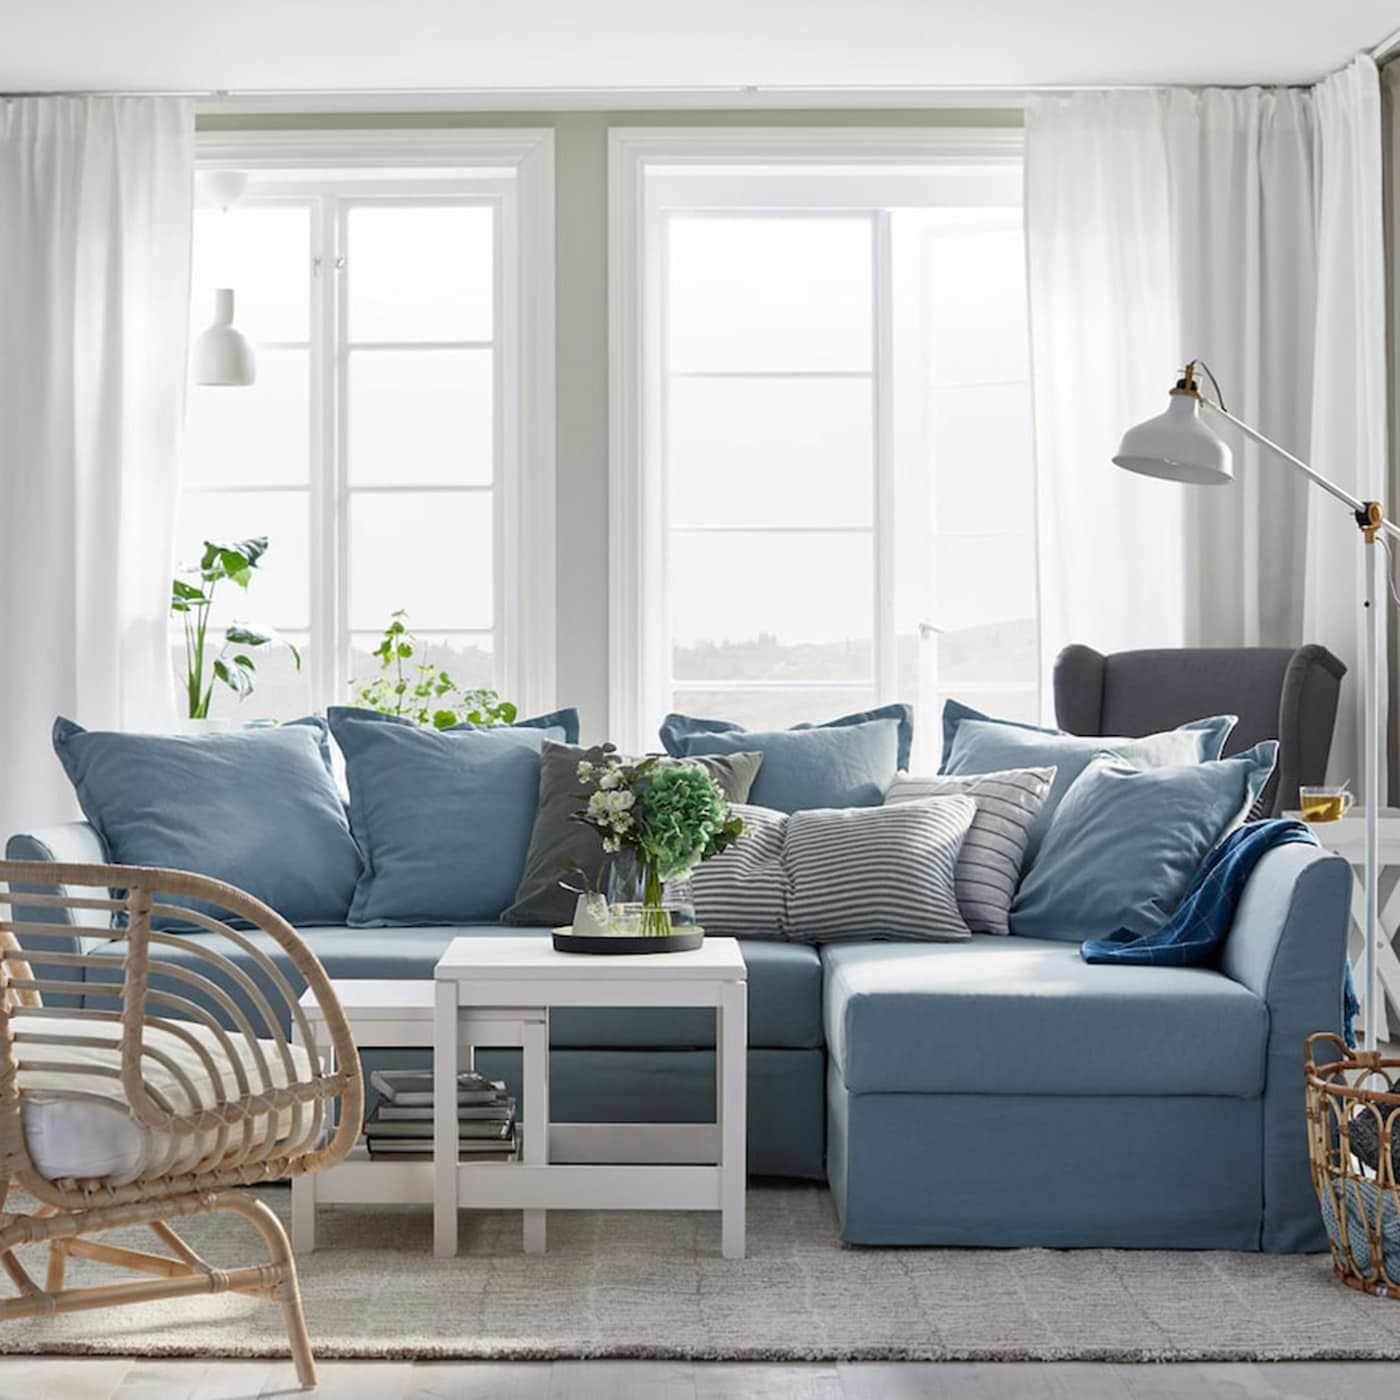 Mobili Bassi Ikea Soggiorno furnishing ideas & inspiration for your living room - ikea